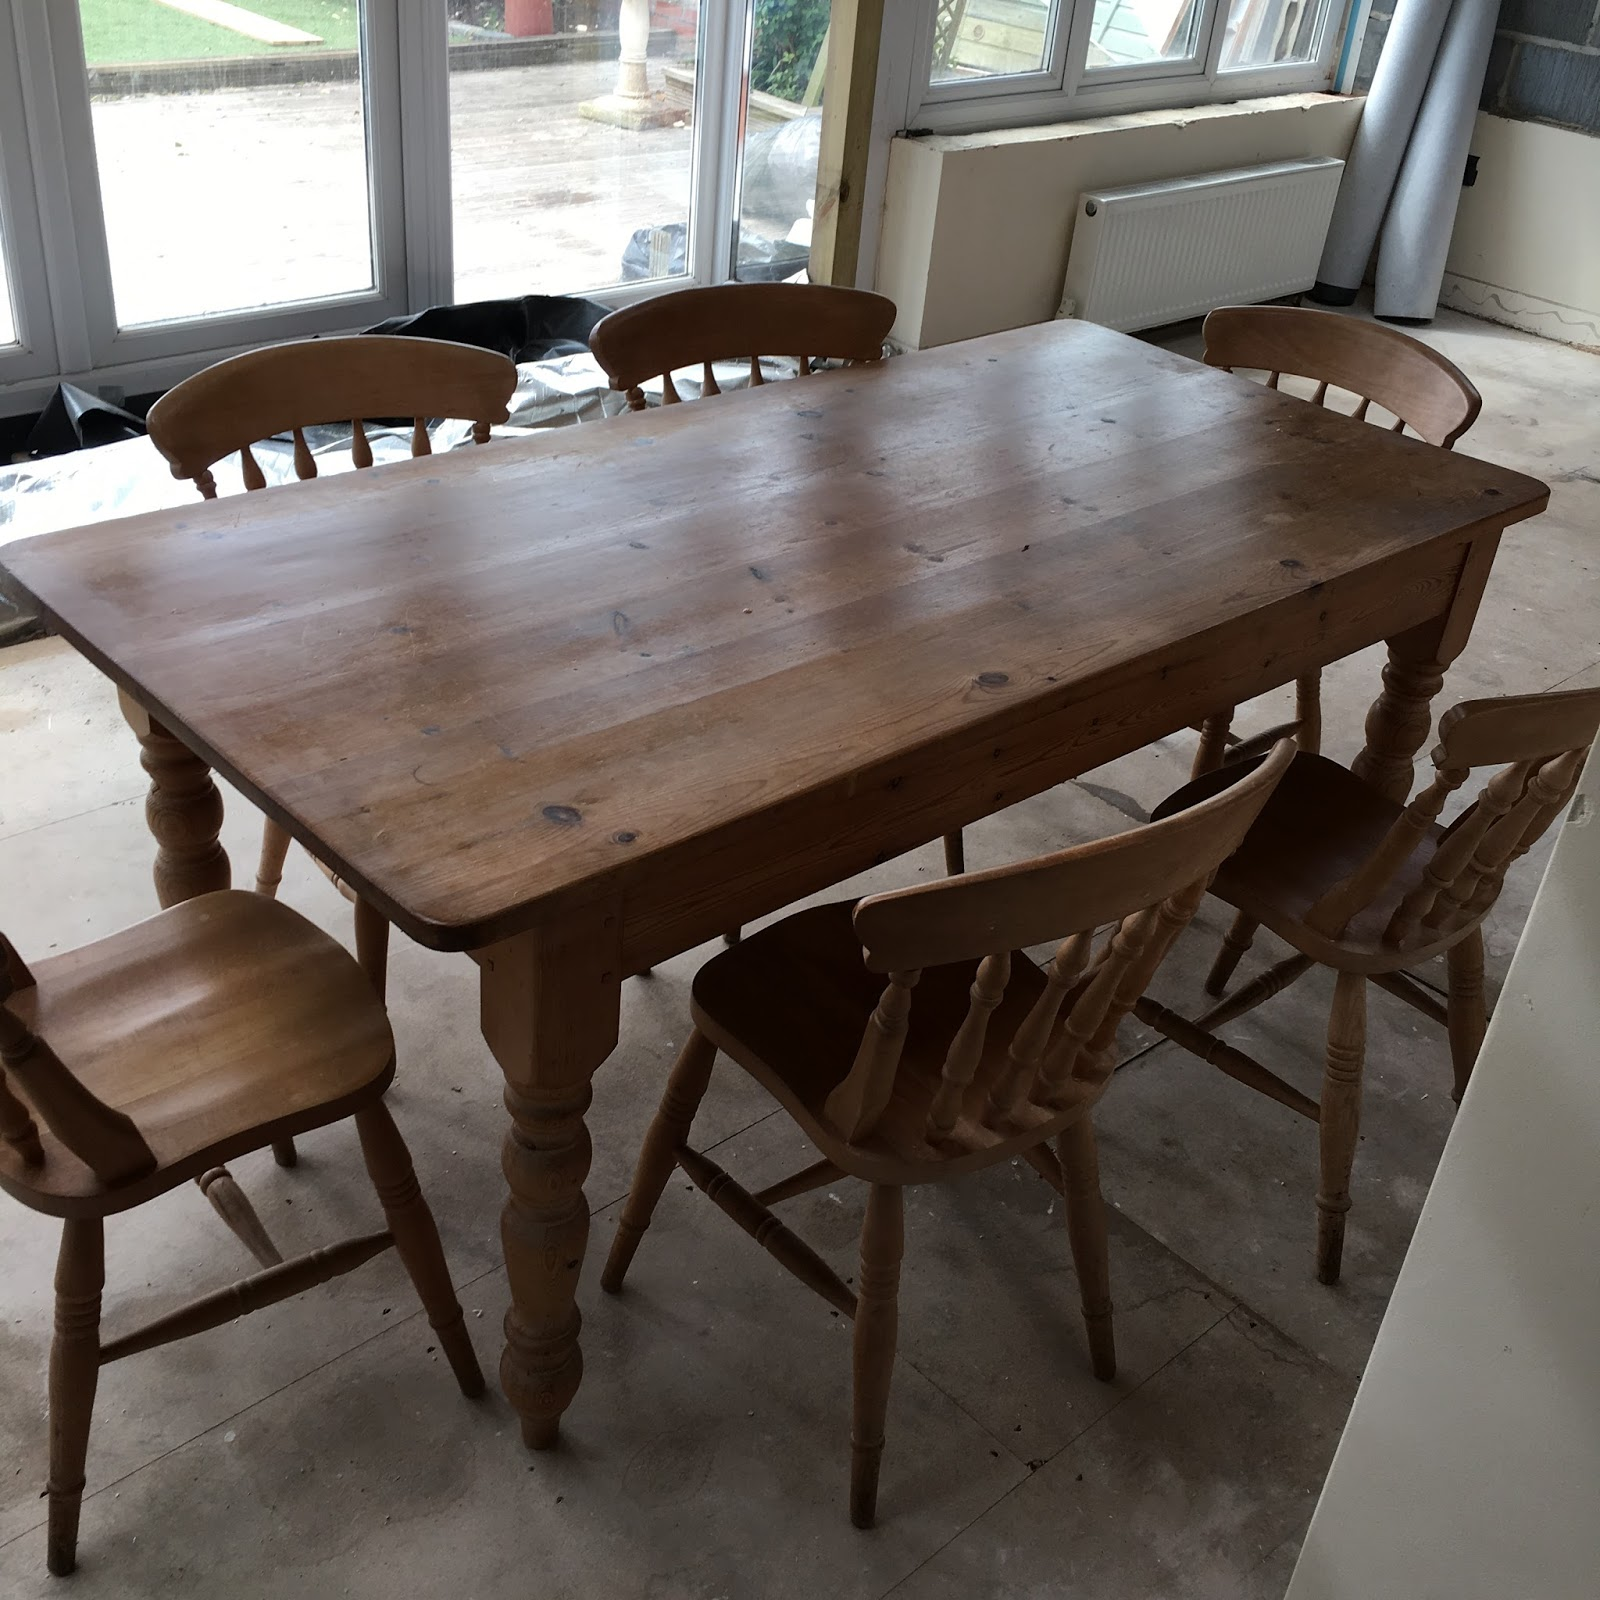 My First Port Of Call Was Sourcing A 6ft Table U0026 Chairs Set From Gumtree. I  Sometimes Use Facebook Buy/sell Groups Or Even Ebay But Often Find That  These ...